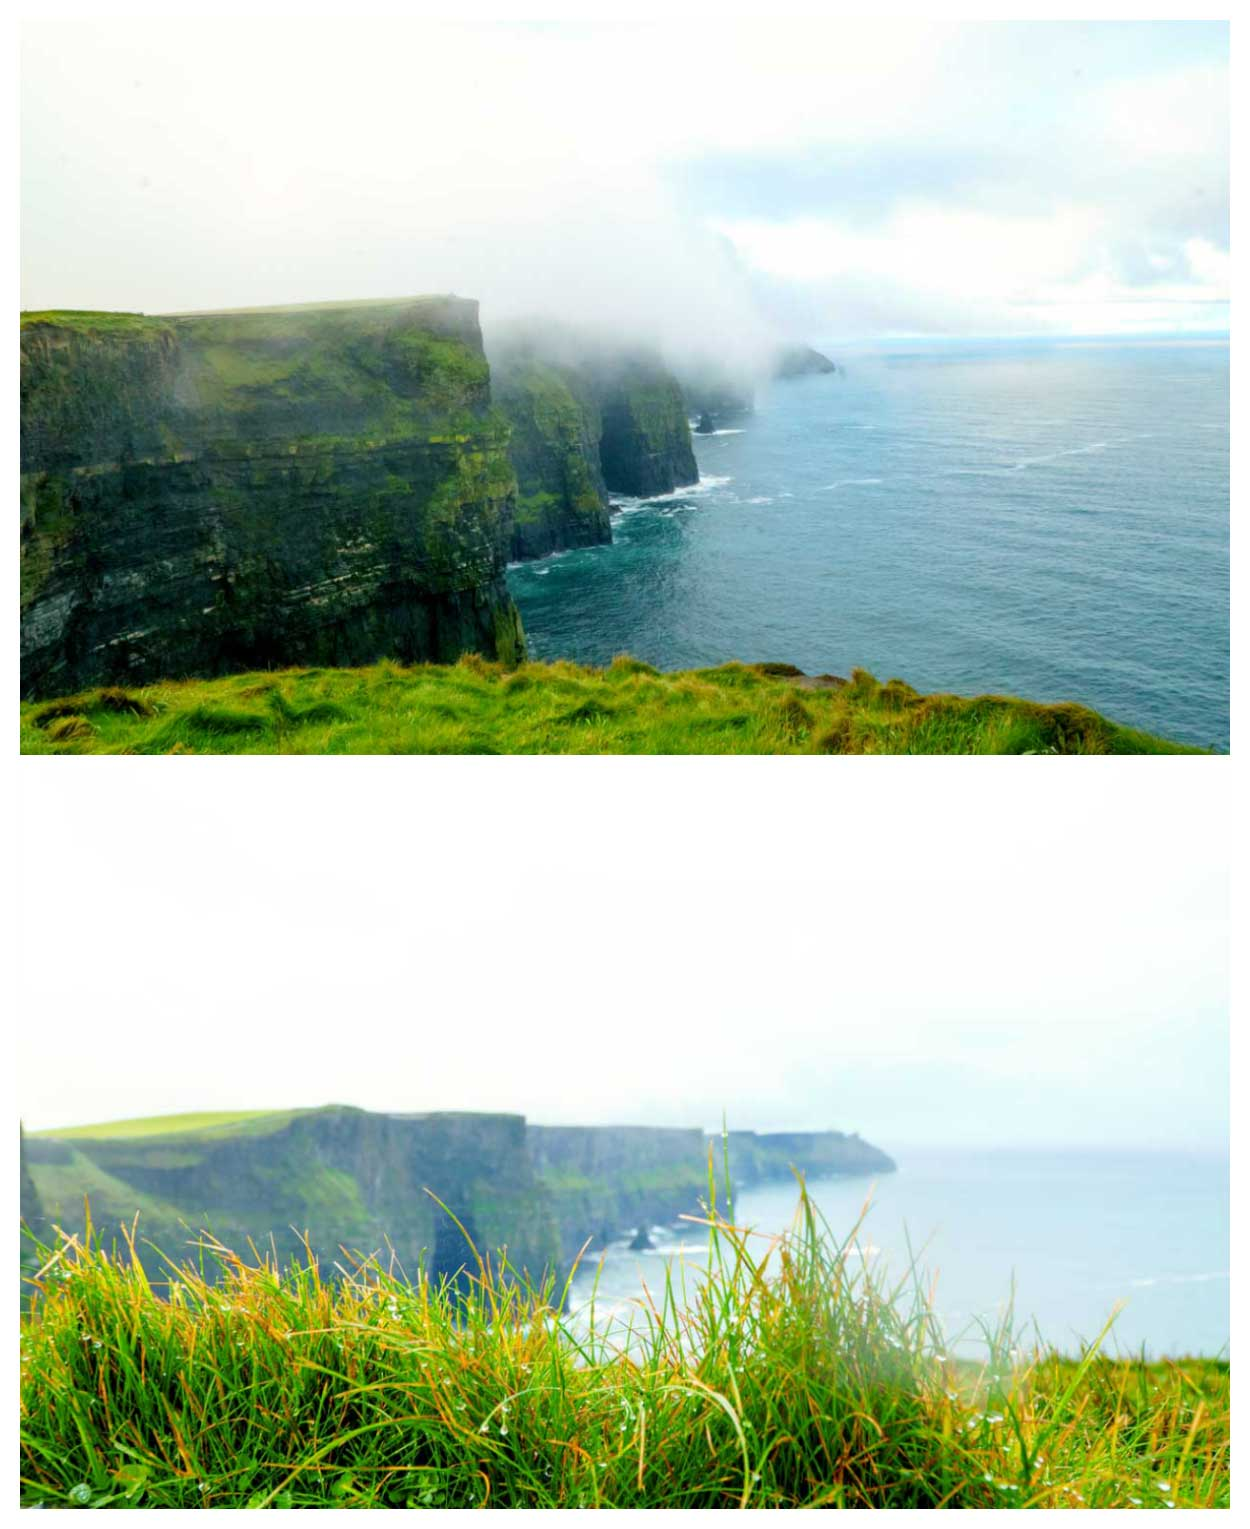 For rolling in over the Cliffs of Moher